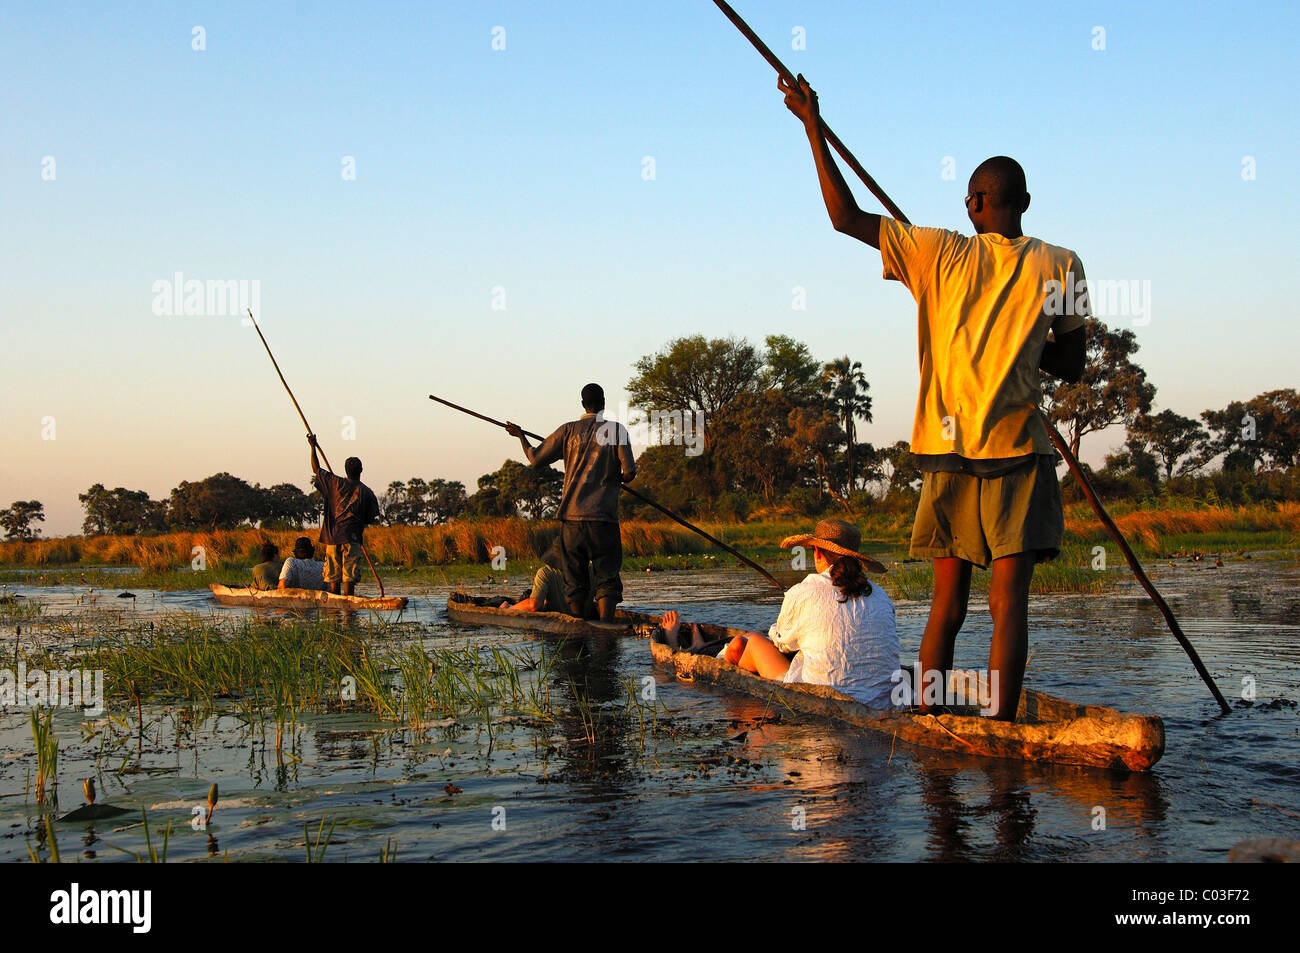 Punters with tourists in the traditional Mokoro dugout canoes on excursion in the Okavango Delta, Botswana, Africa - Stock Image